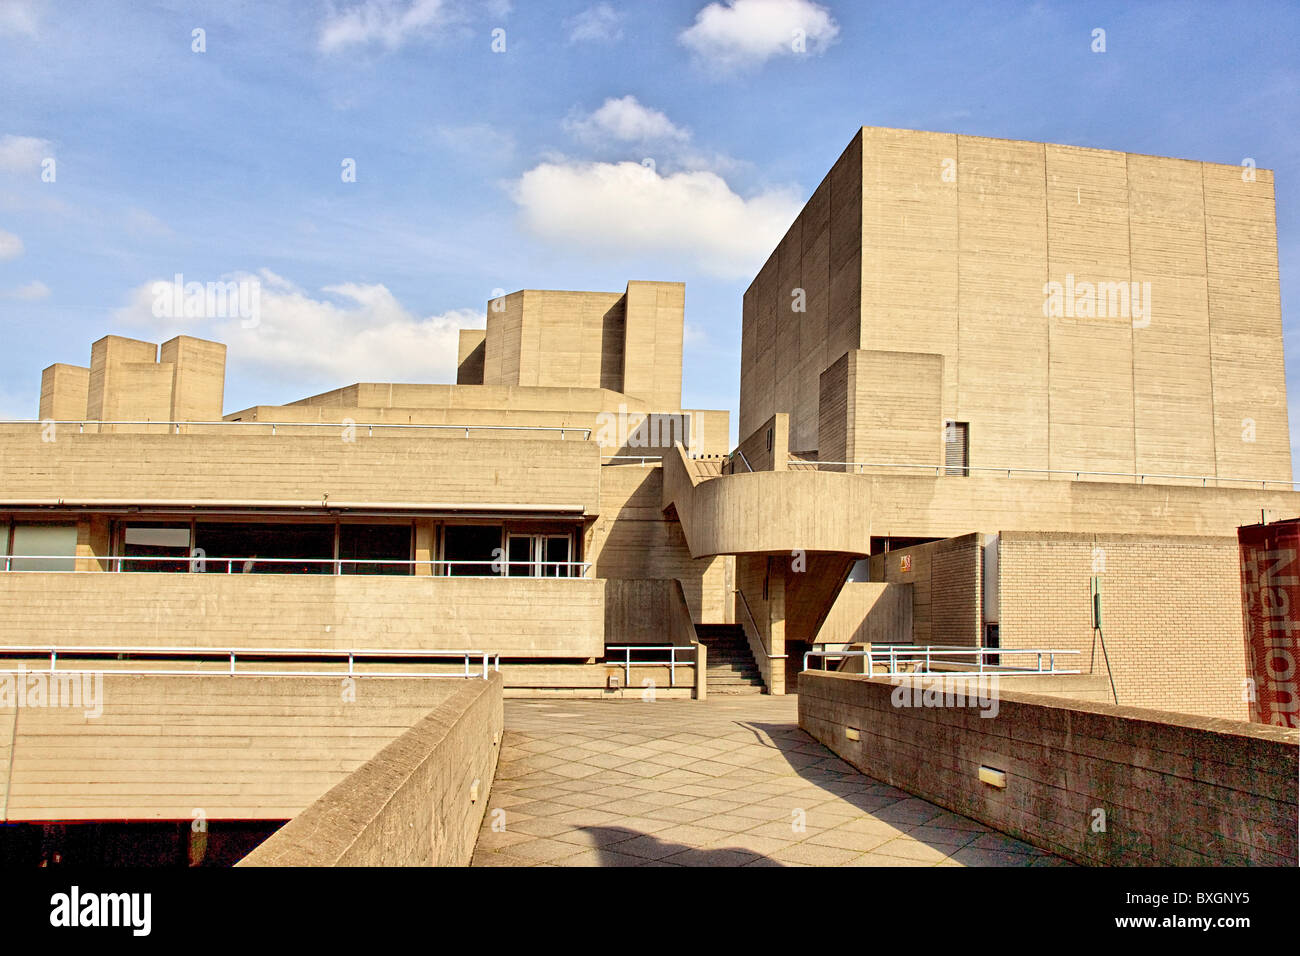 Cuboid concrete architecture of the National Theatre on the South Bank of the Thames in London - Stock Image